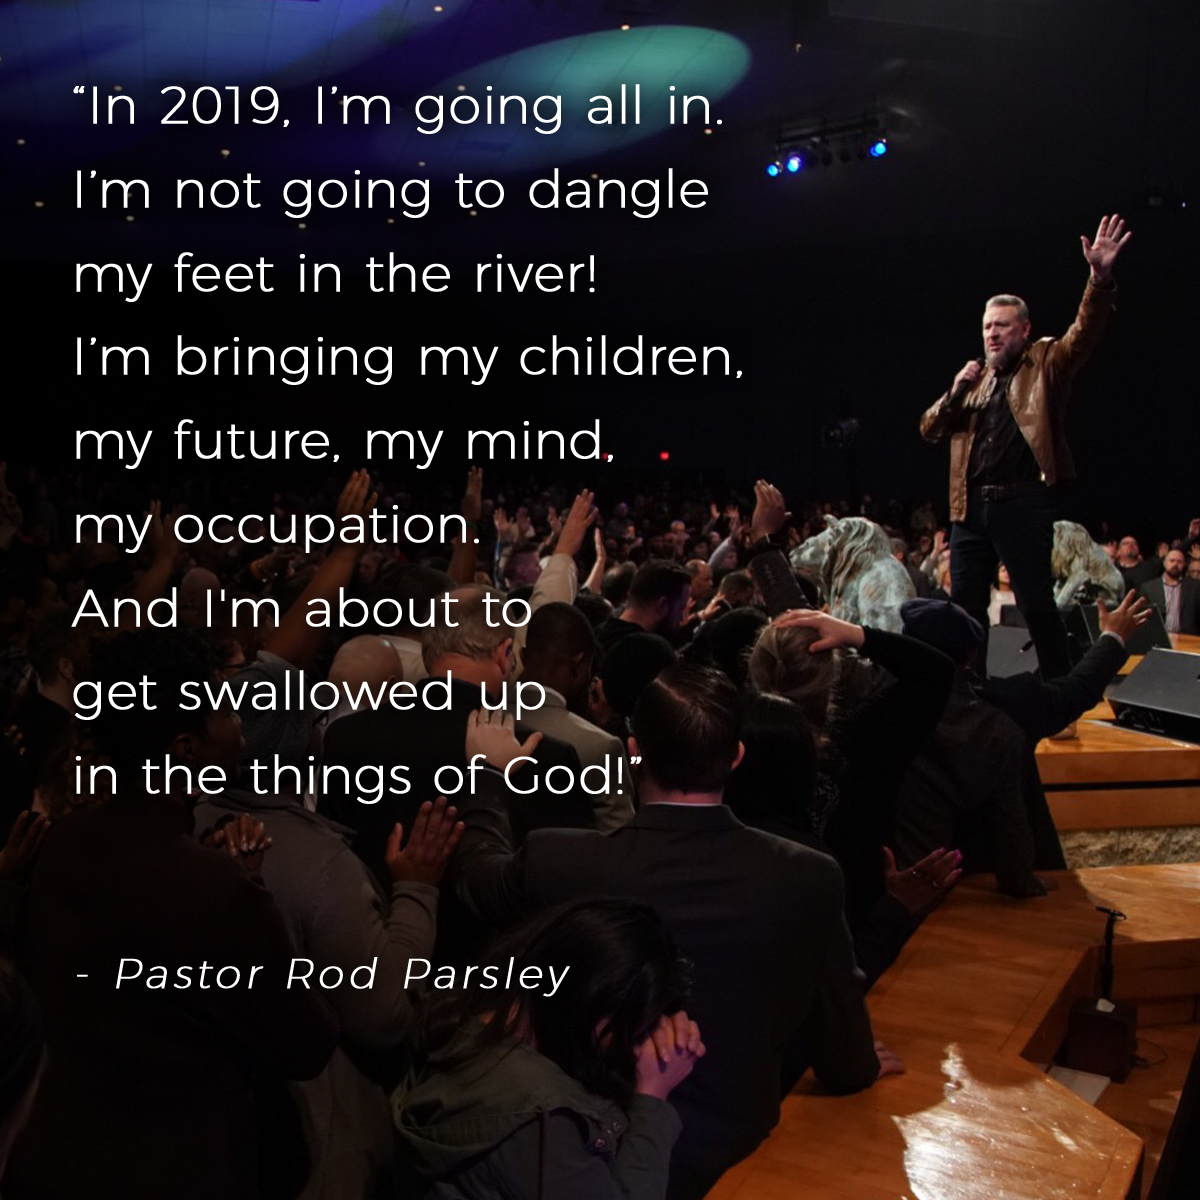 """In 2019, I'm going all in. I'm not going to dangle my feet in the river! I'm bringing my children, my future, my mind, my occupation. And I'm about to get swallowed up in the things of God!"" – Pastor Rod Parsley"